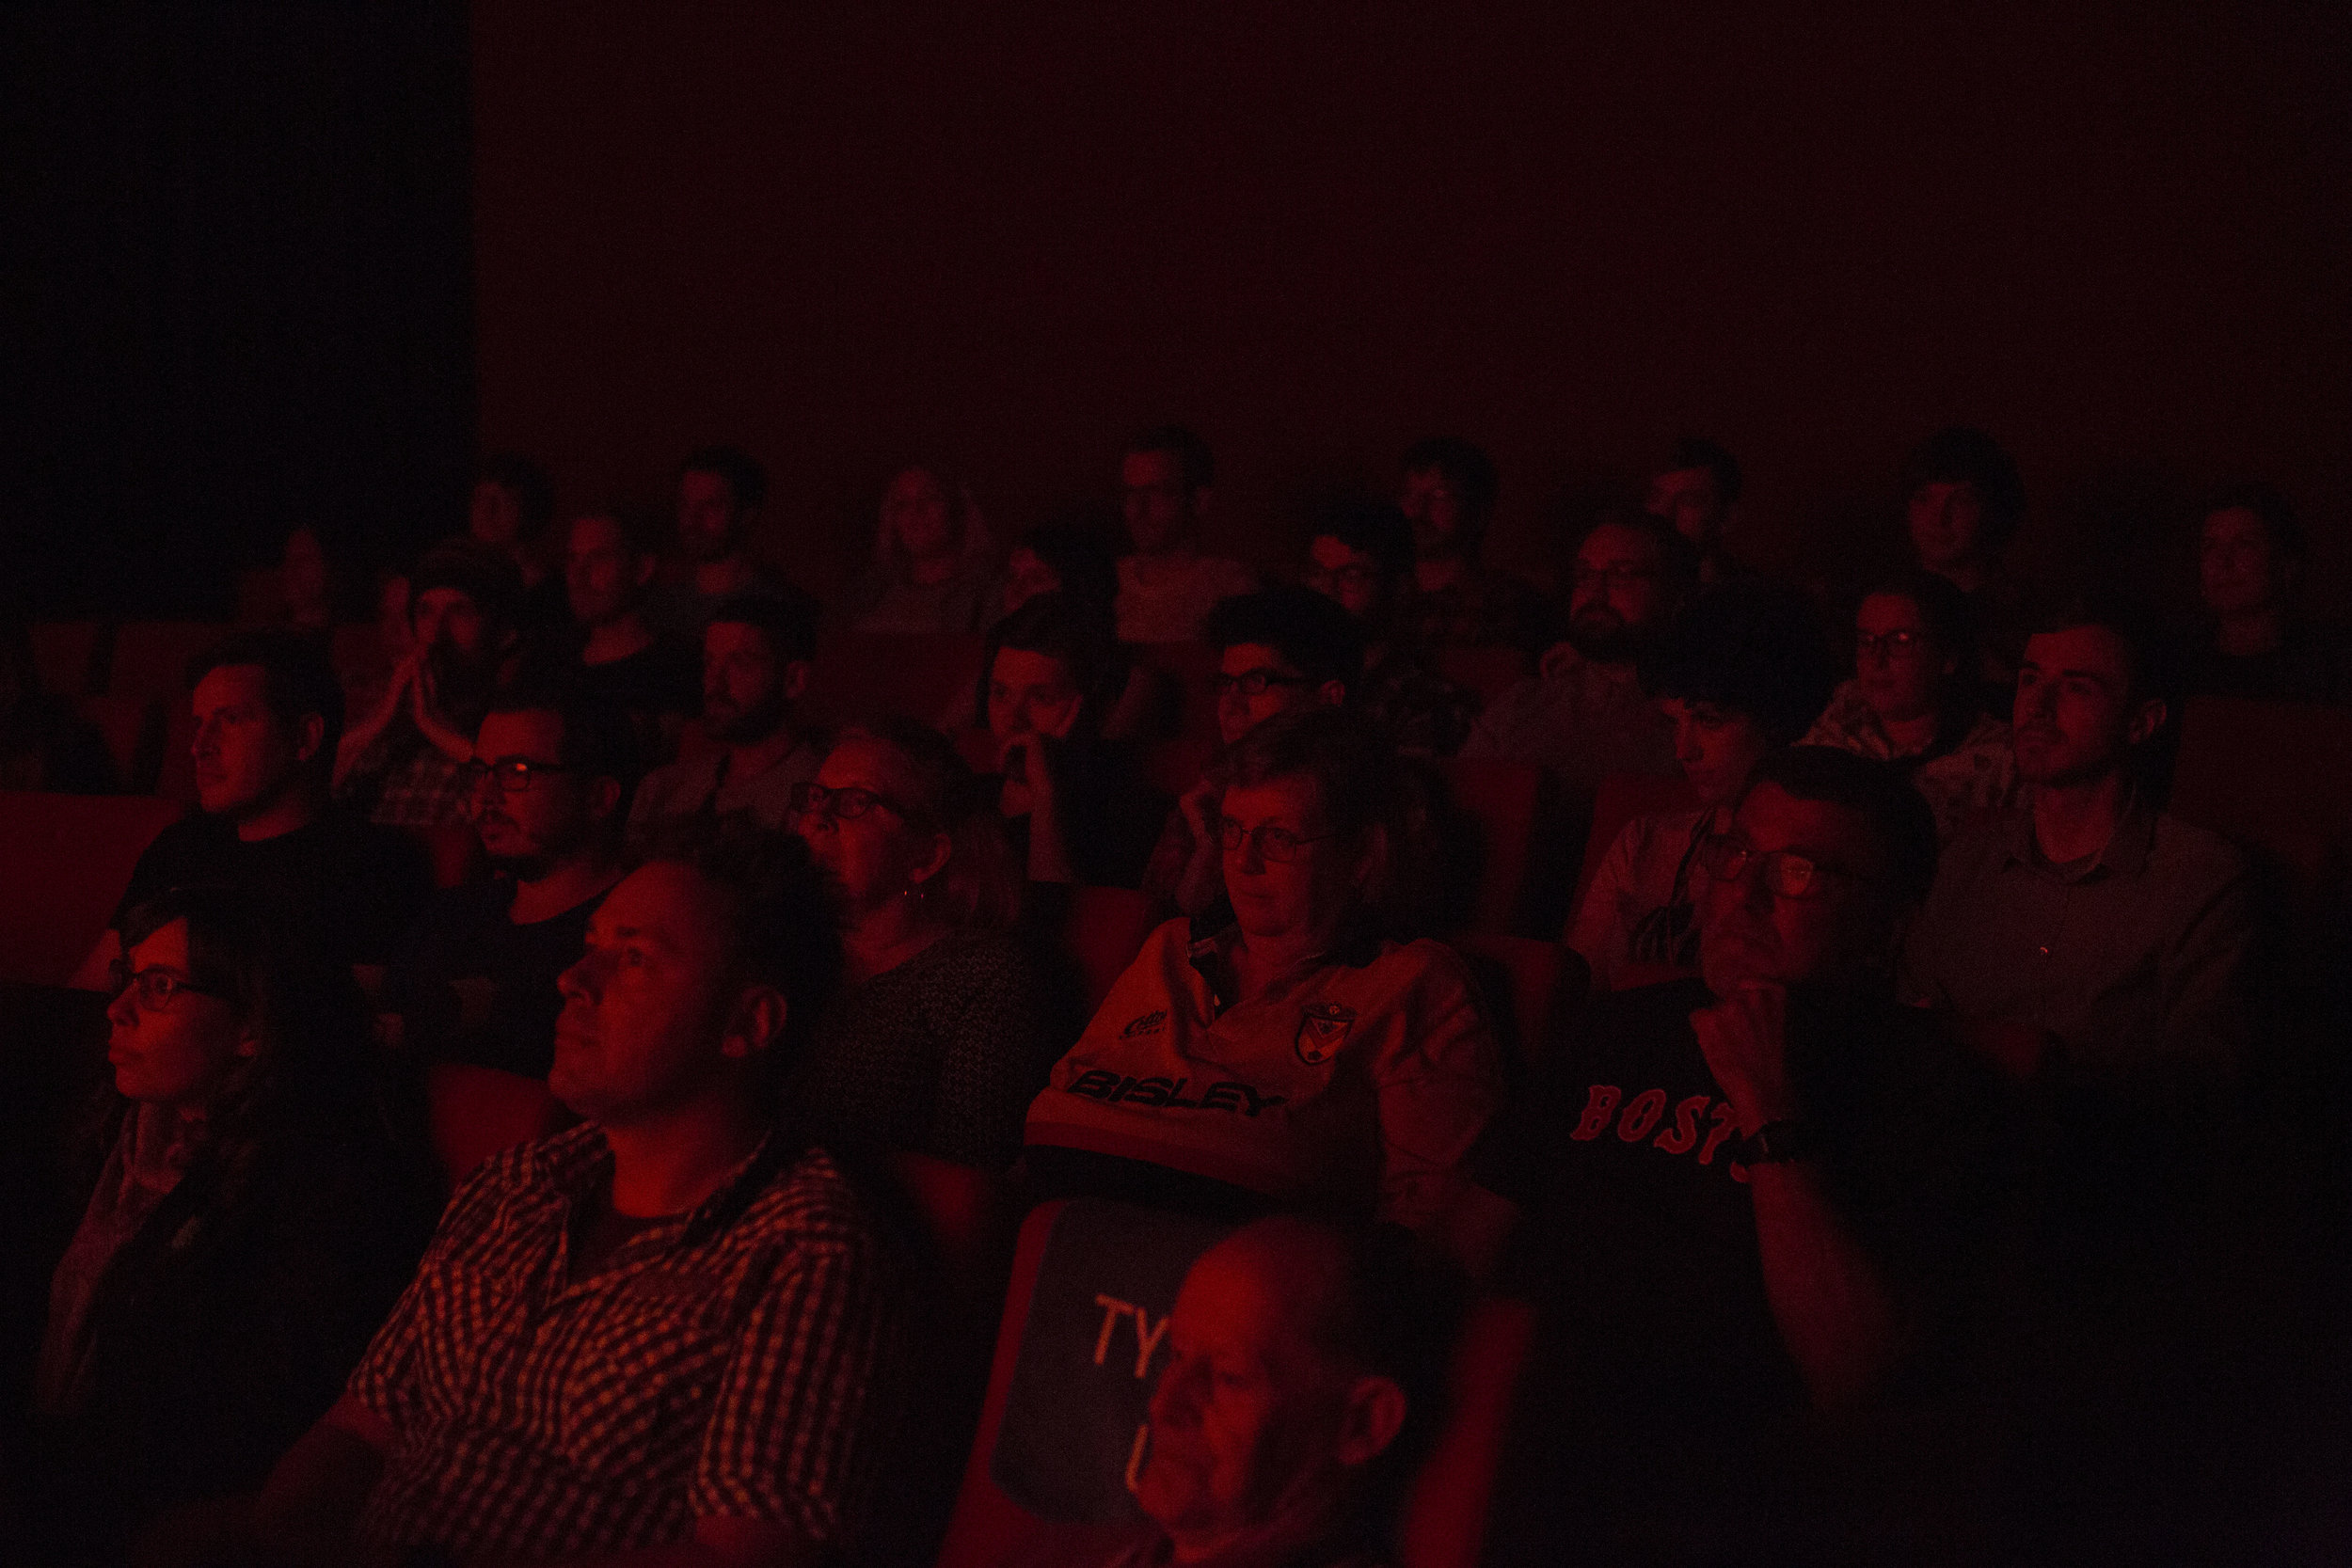 Cardiff Animation Nights // Late Night Work Club Special